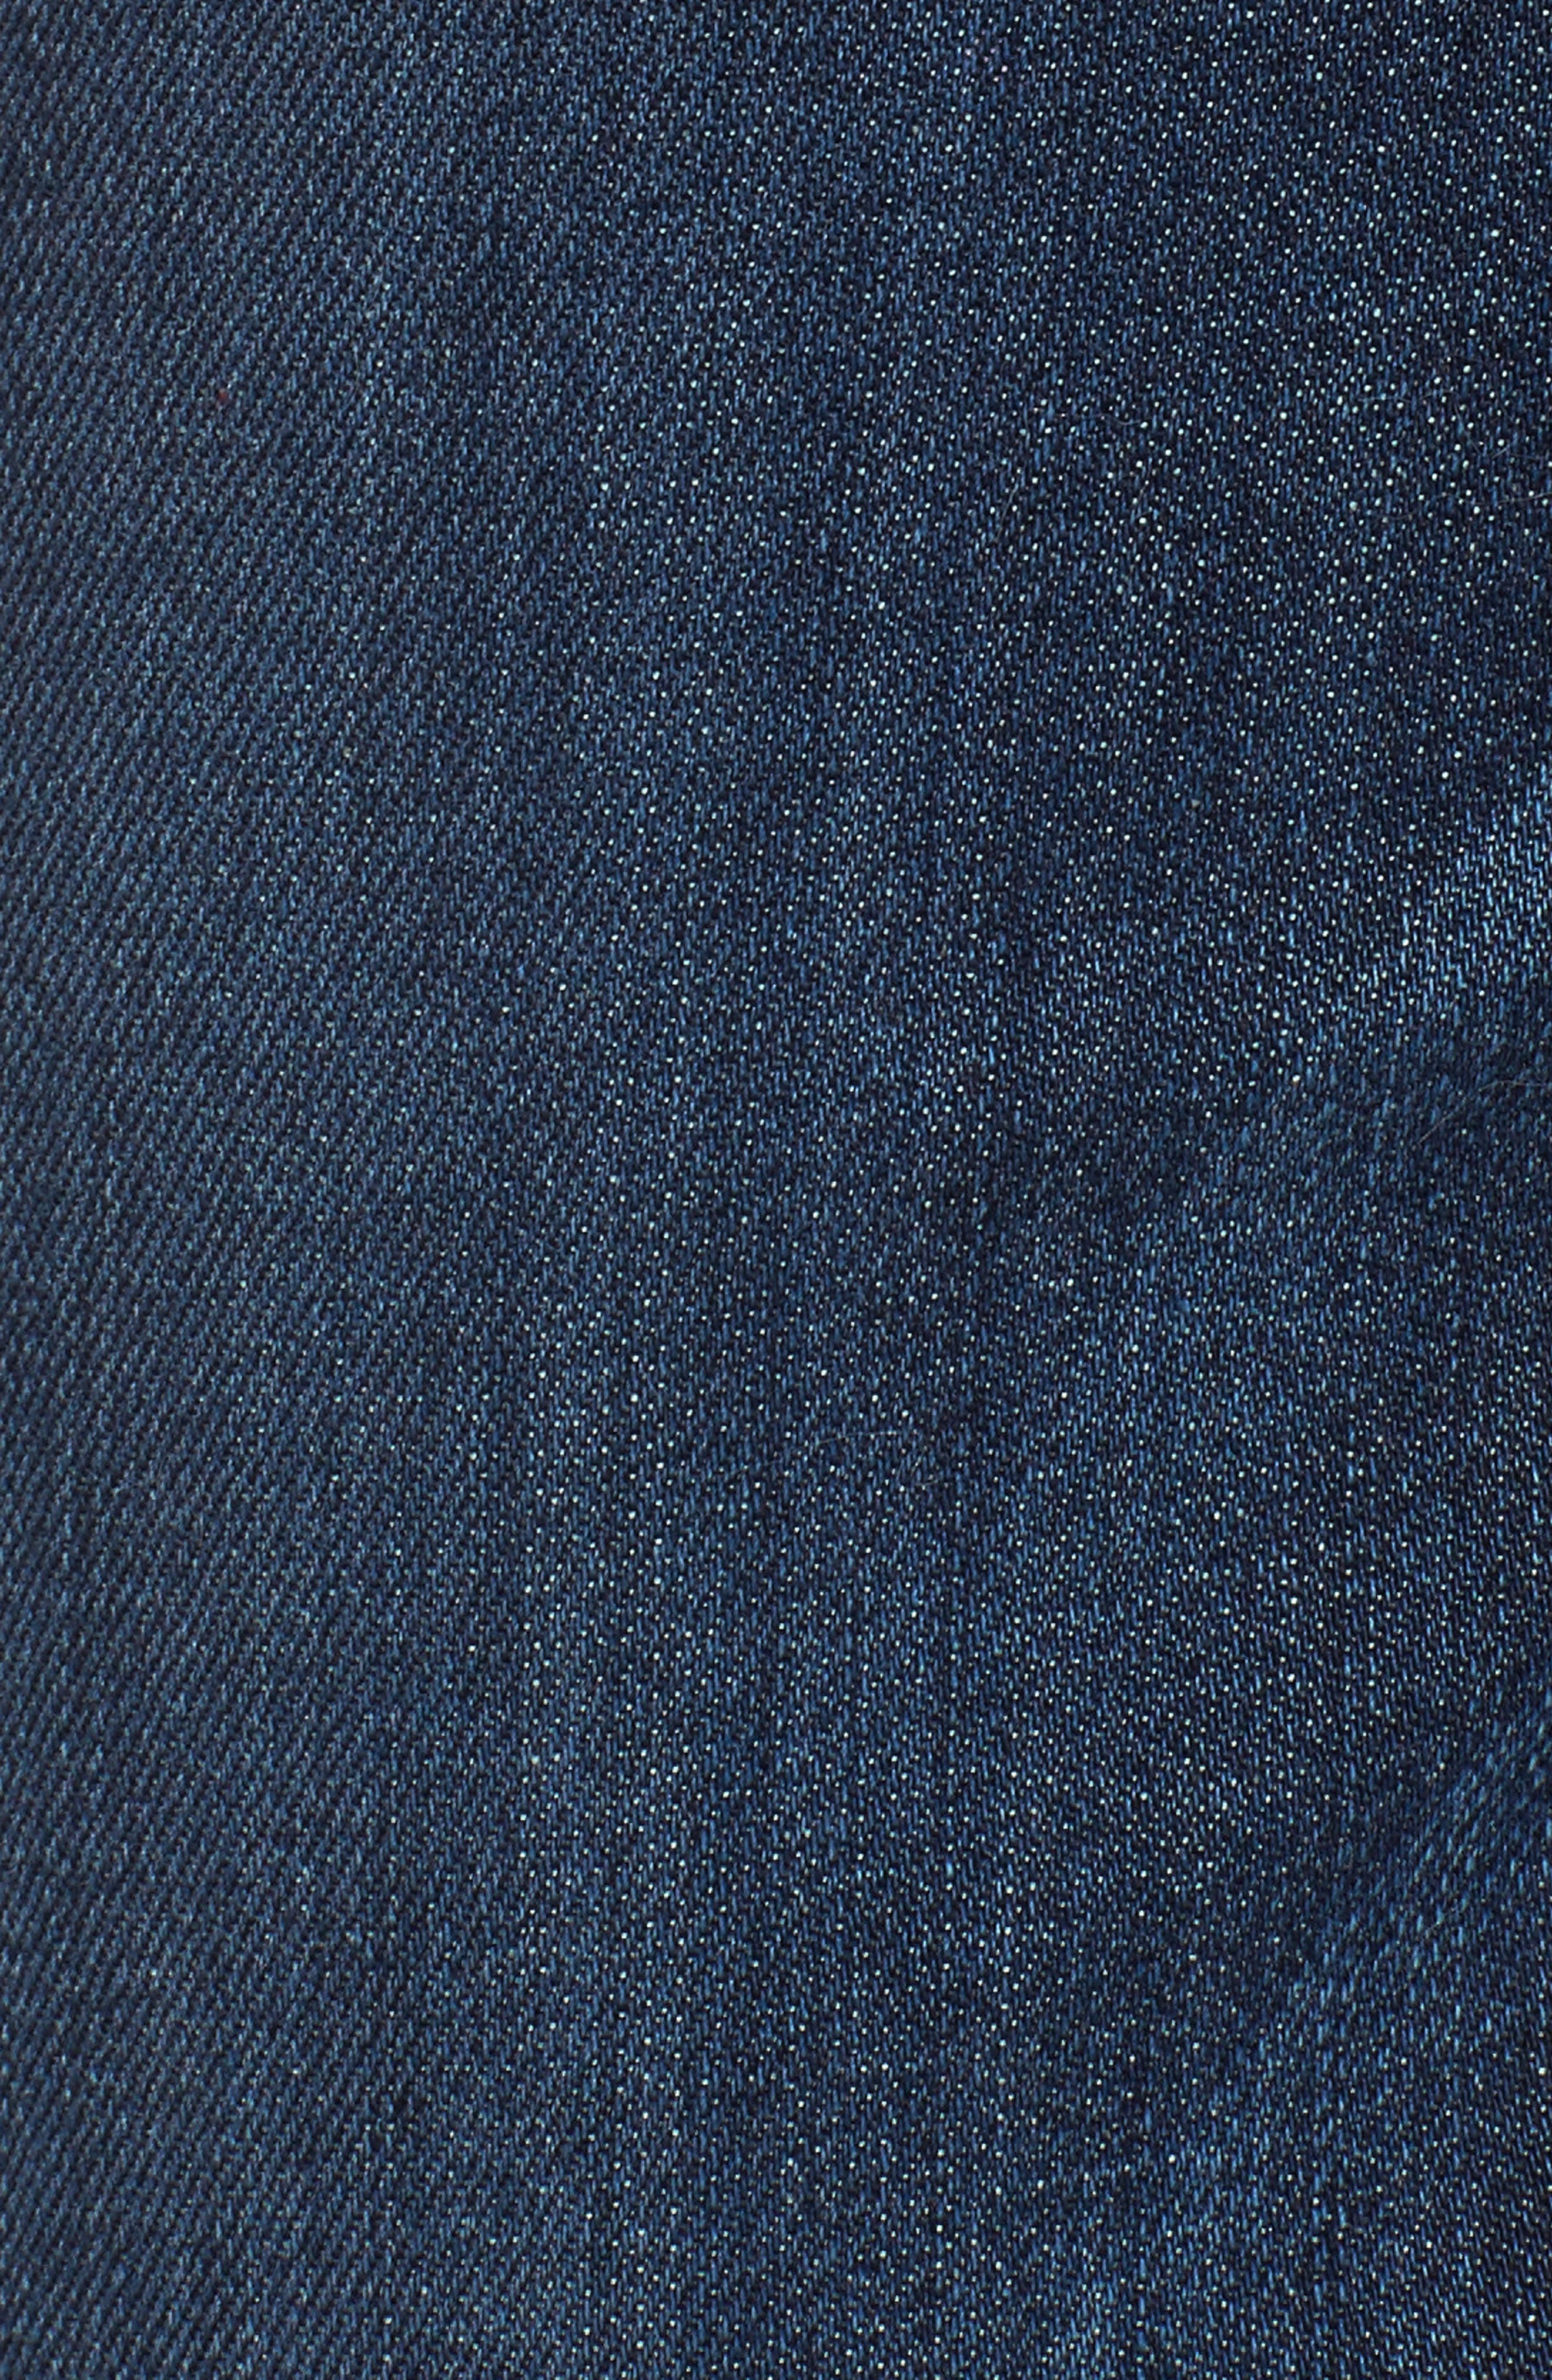 Alternate Image 5  - KUT from the Kloth Amy Cuffed Crop Jeans (Overt)